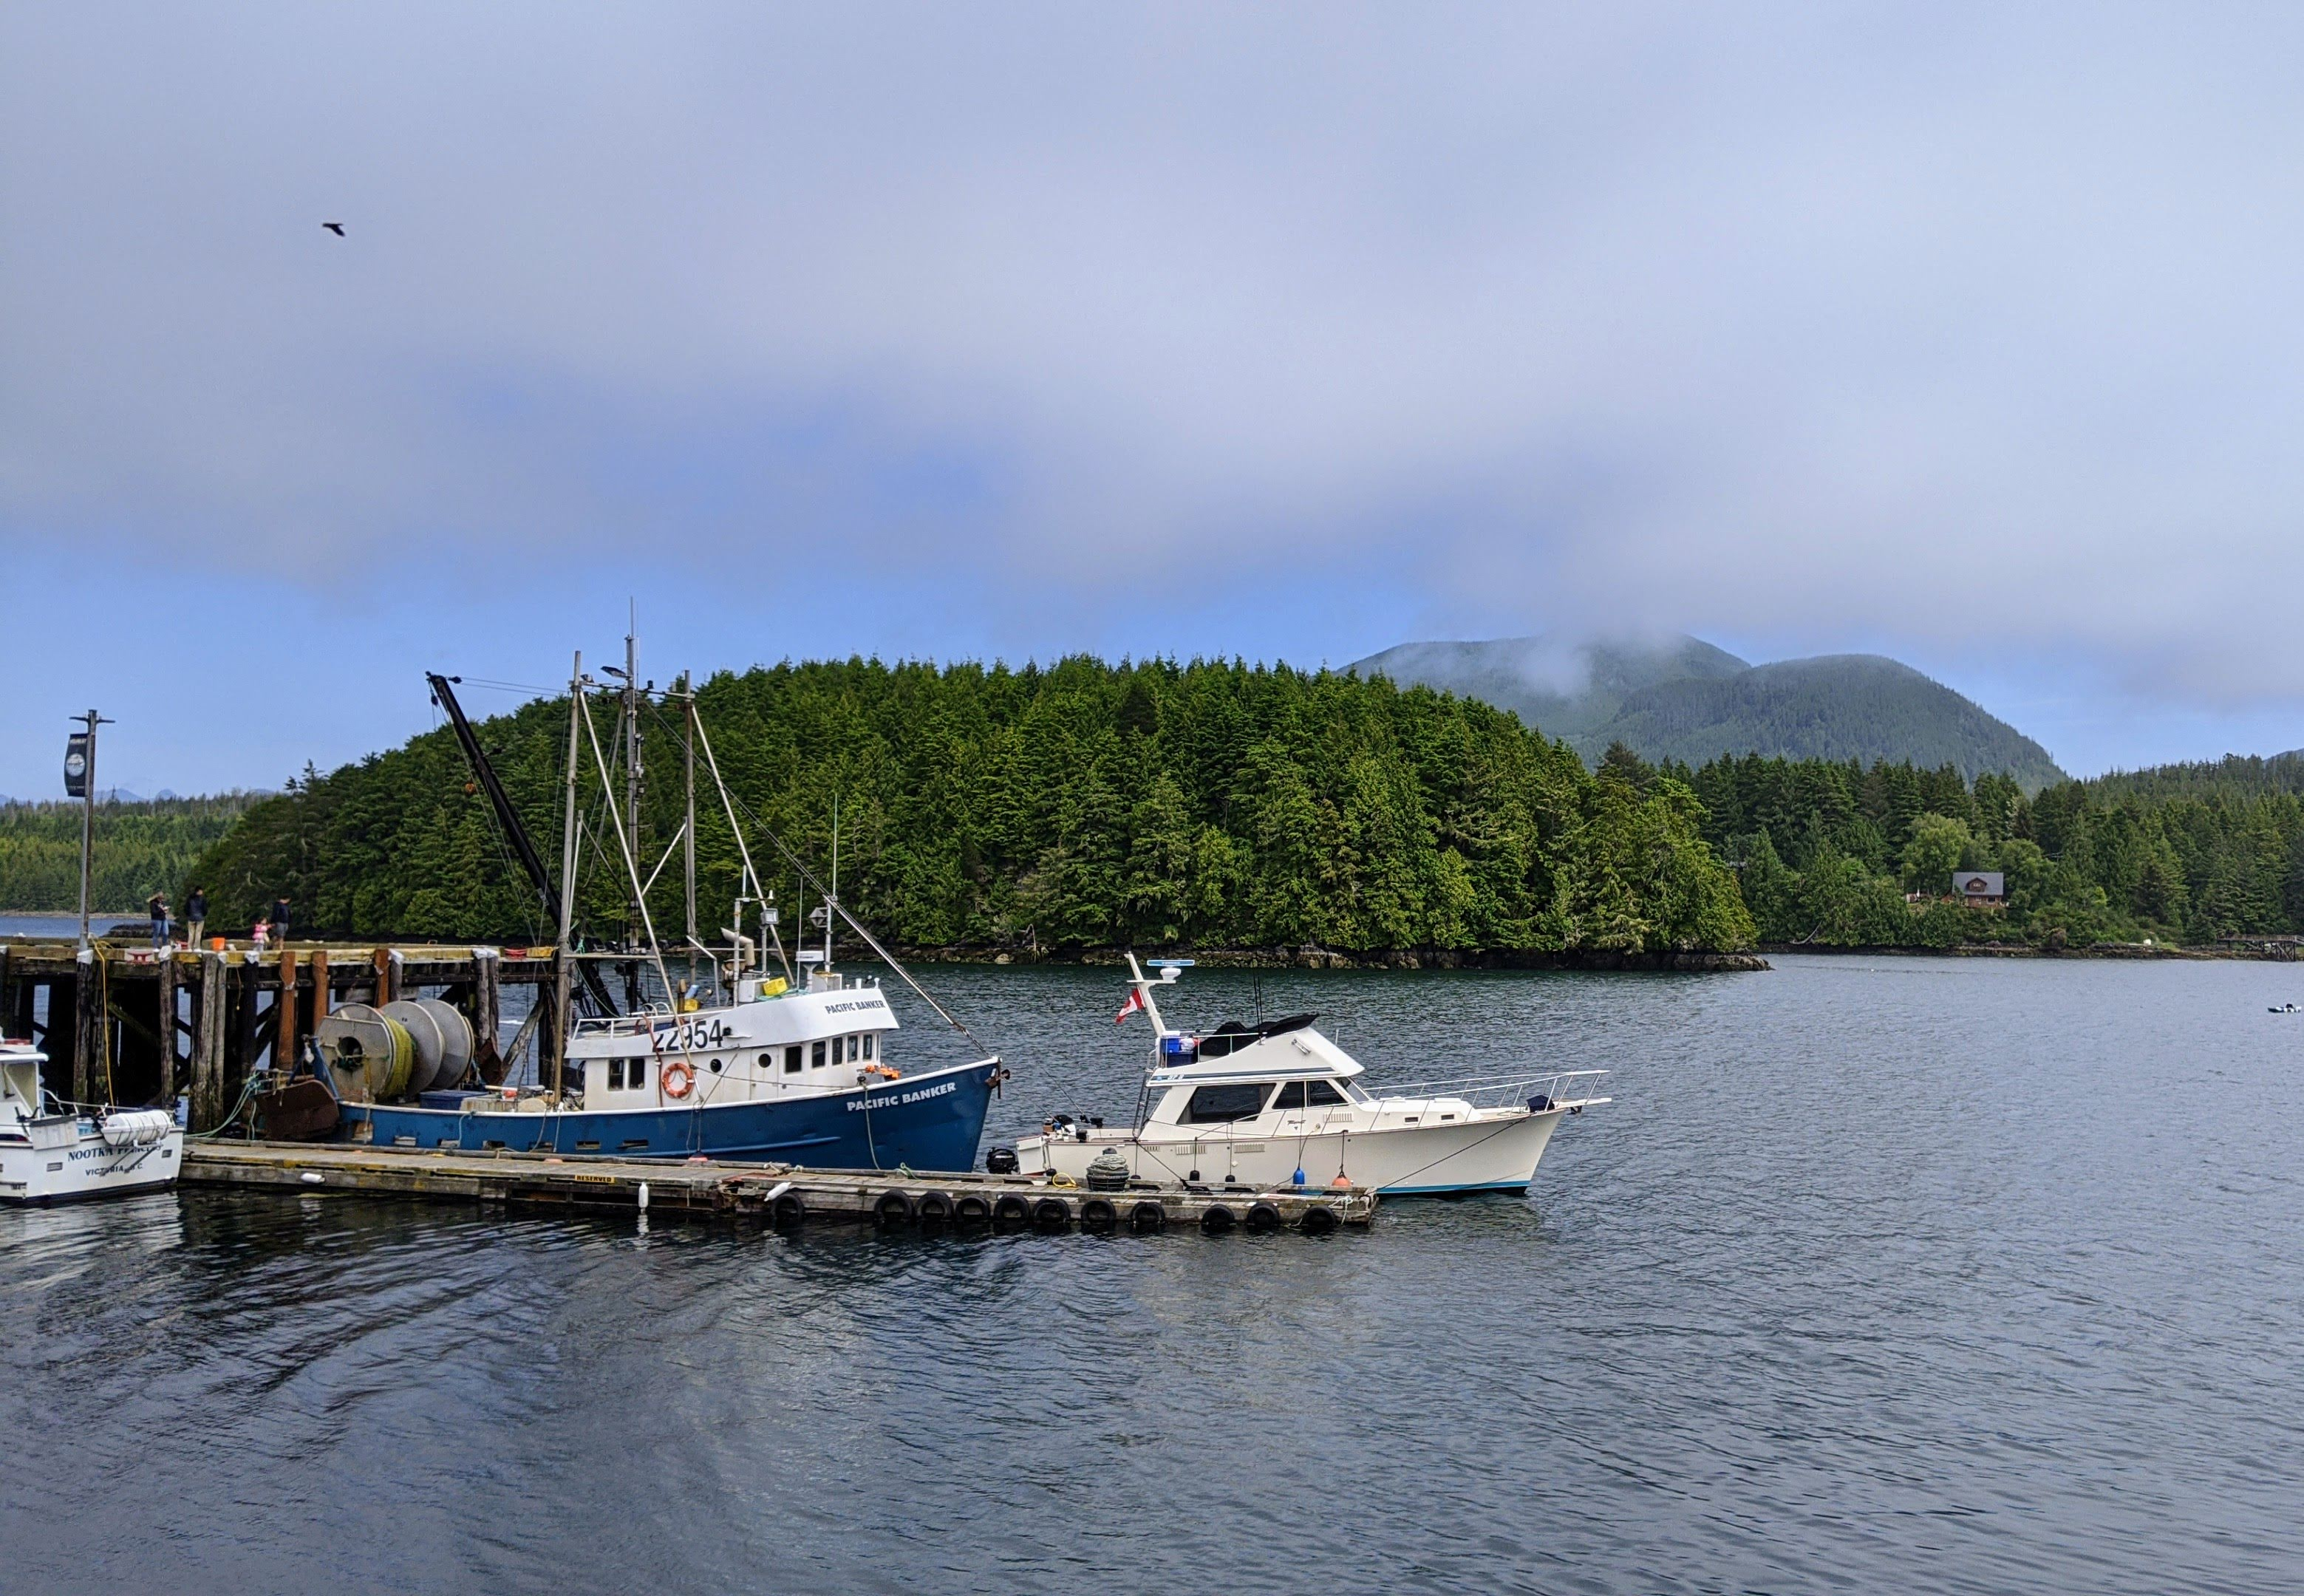 The Harbour in Ucluelet